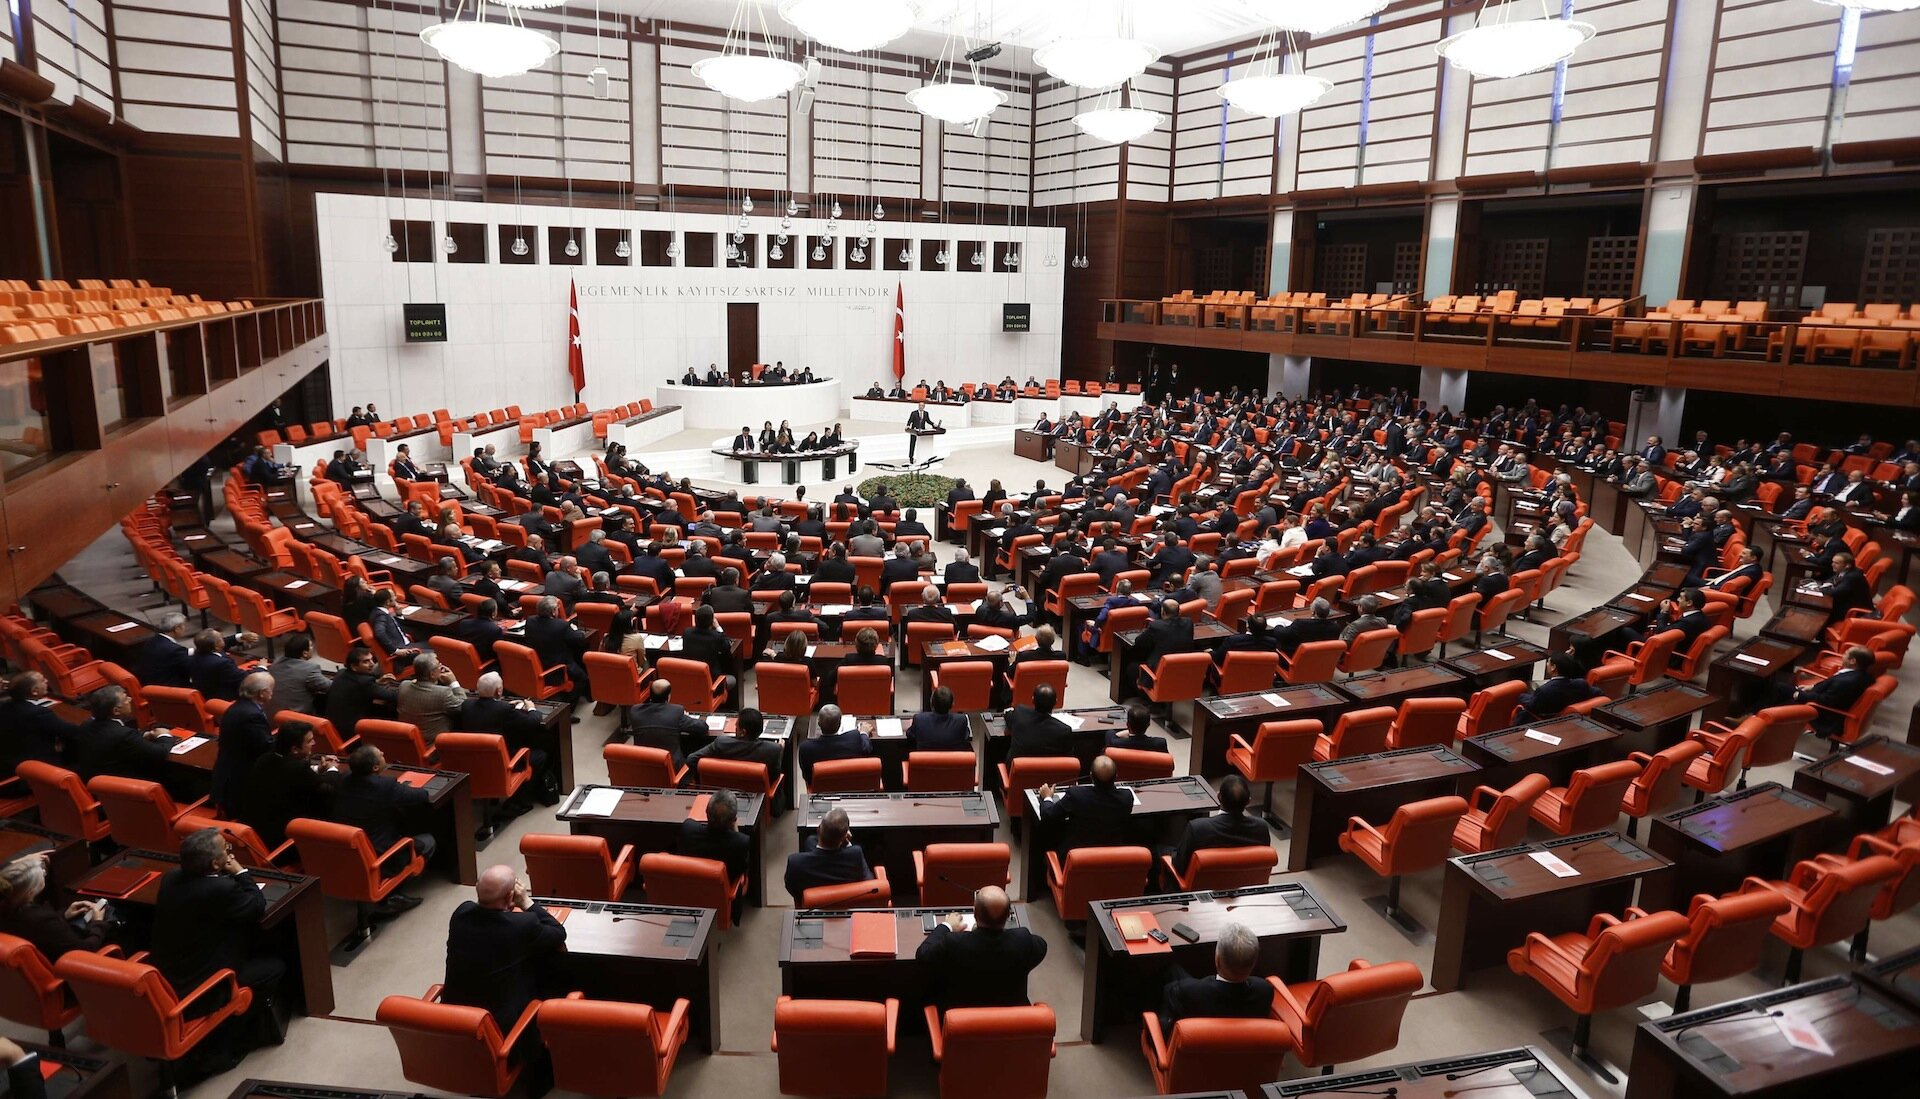 3If the Turkish Grand National Assembly is on holiday, then it will be called immediately to convene. The Assembly may change the period of state of emergency. Upon the request of the Parliament, it may extend this period for a maximum of four months or cancel the state of emergency.